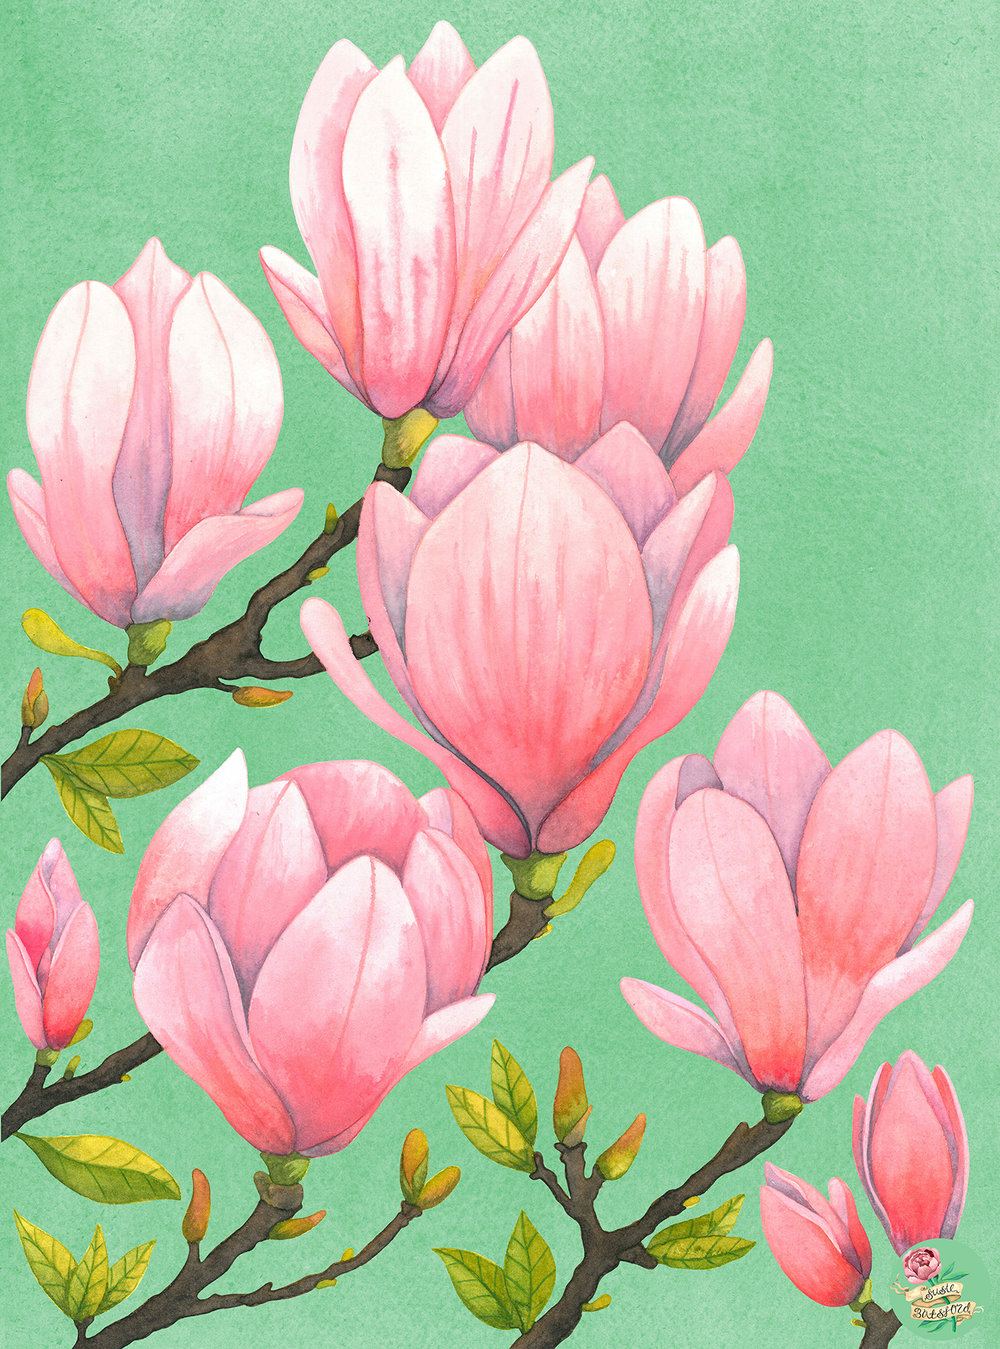 Magnolias Watercolour Painting by Susie Batsford